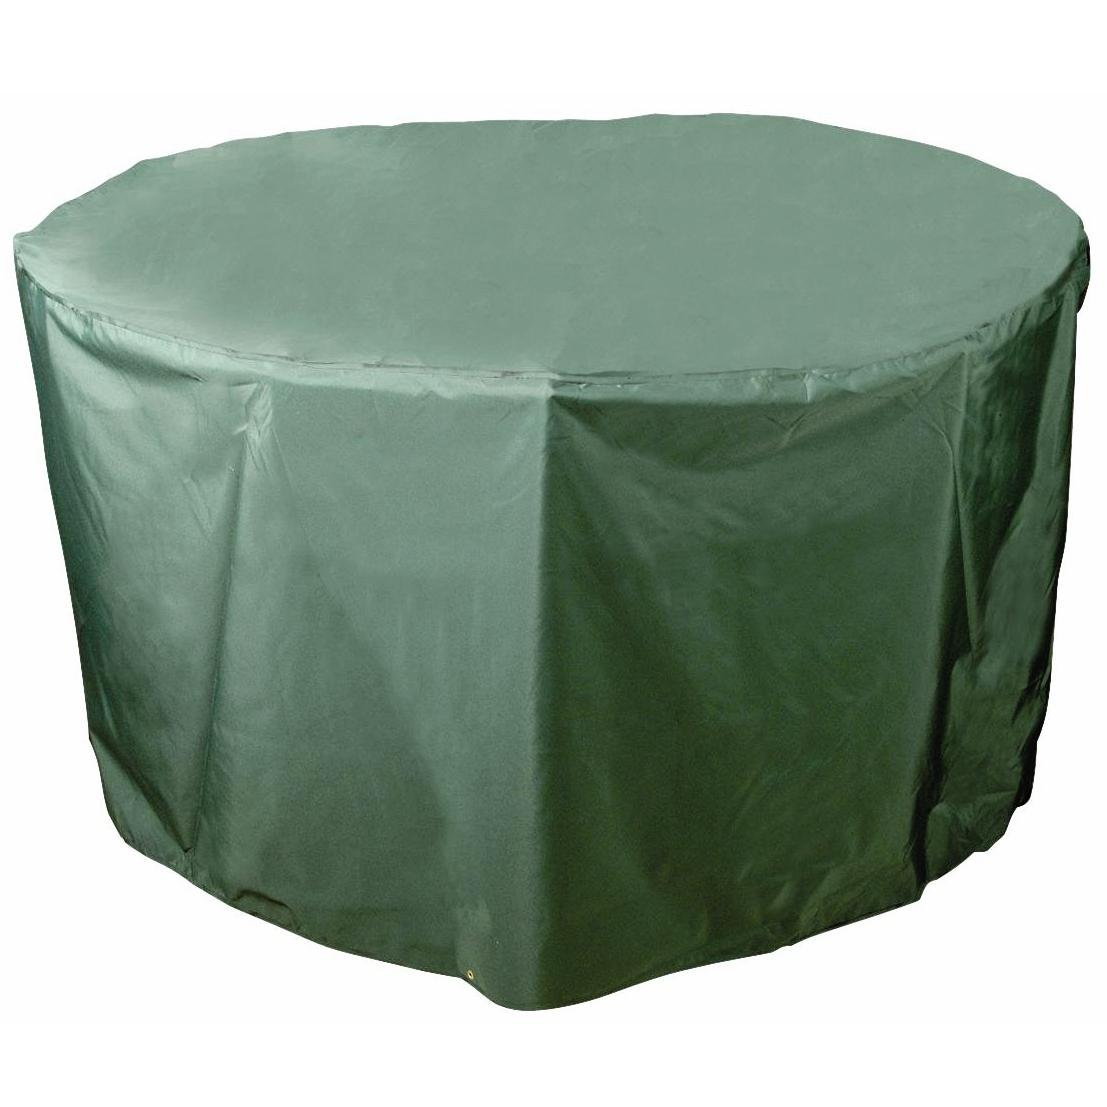 garden chair covers tesco cover hire hartlepool furniture round 124cm sc5211796 66 63 who